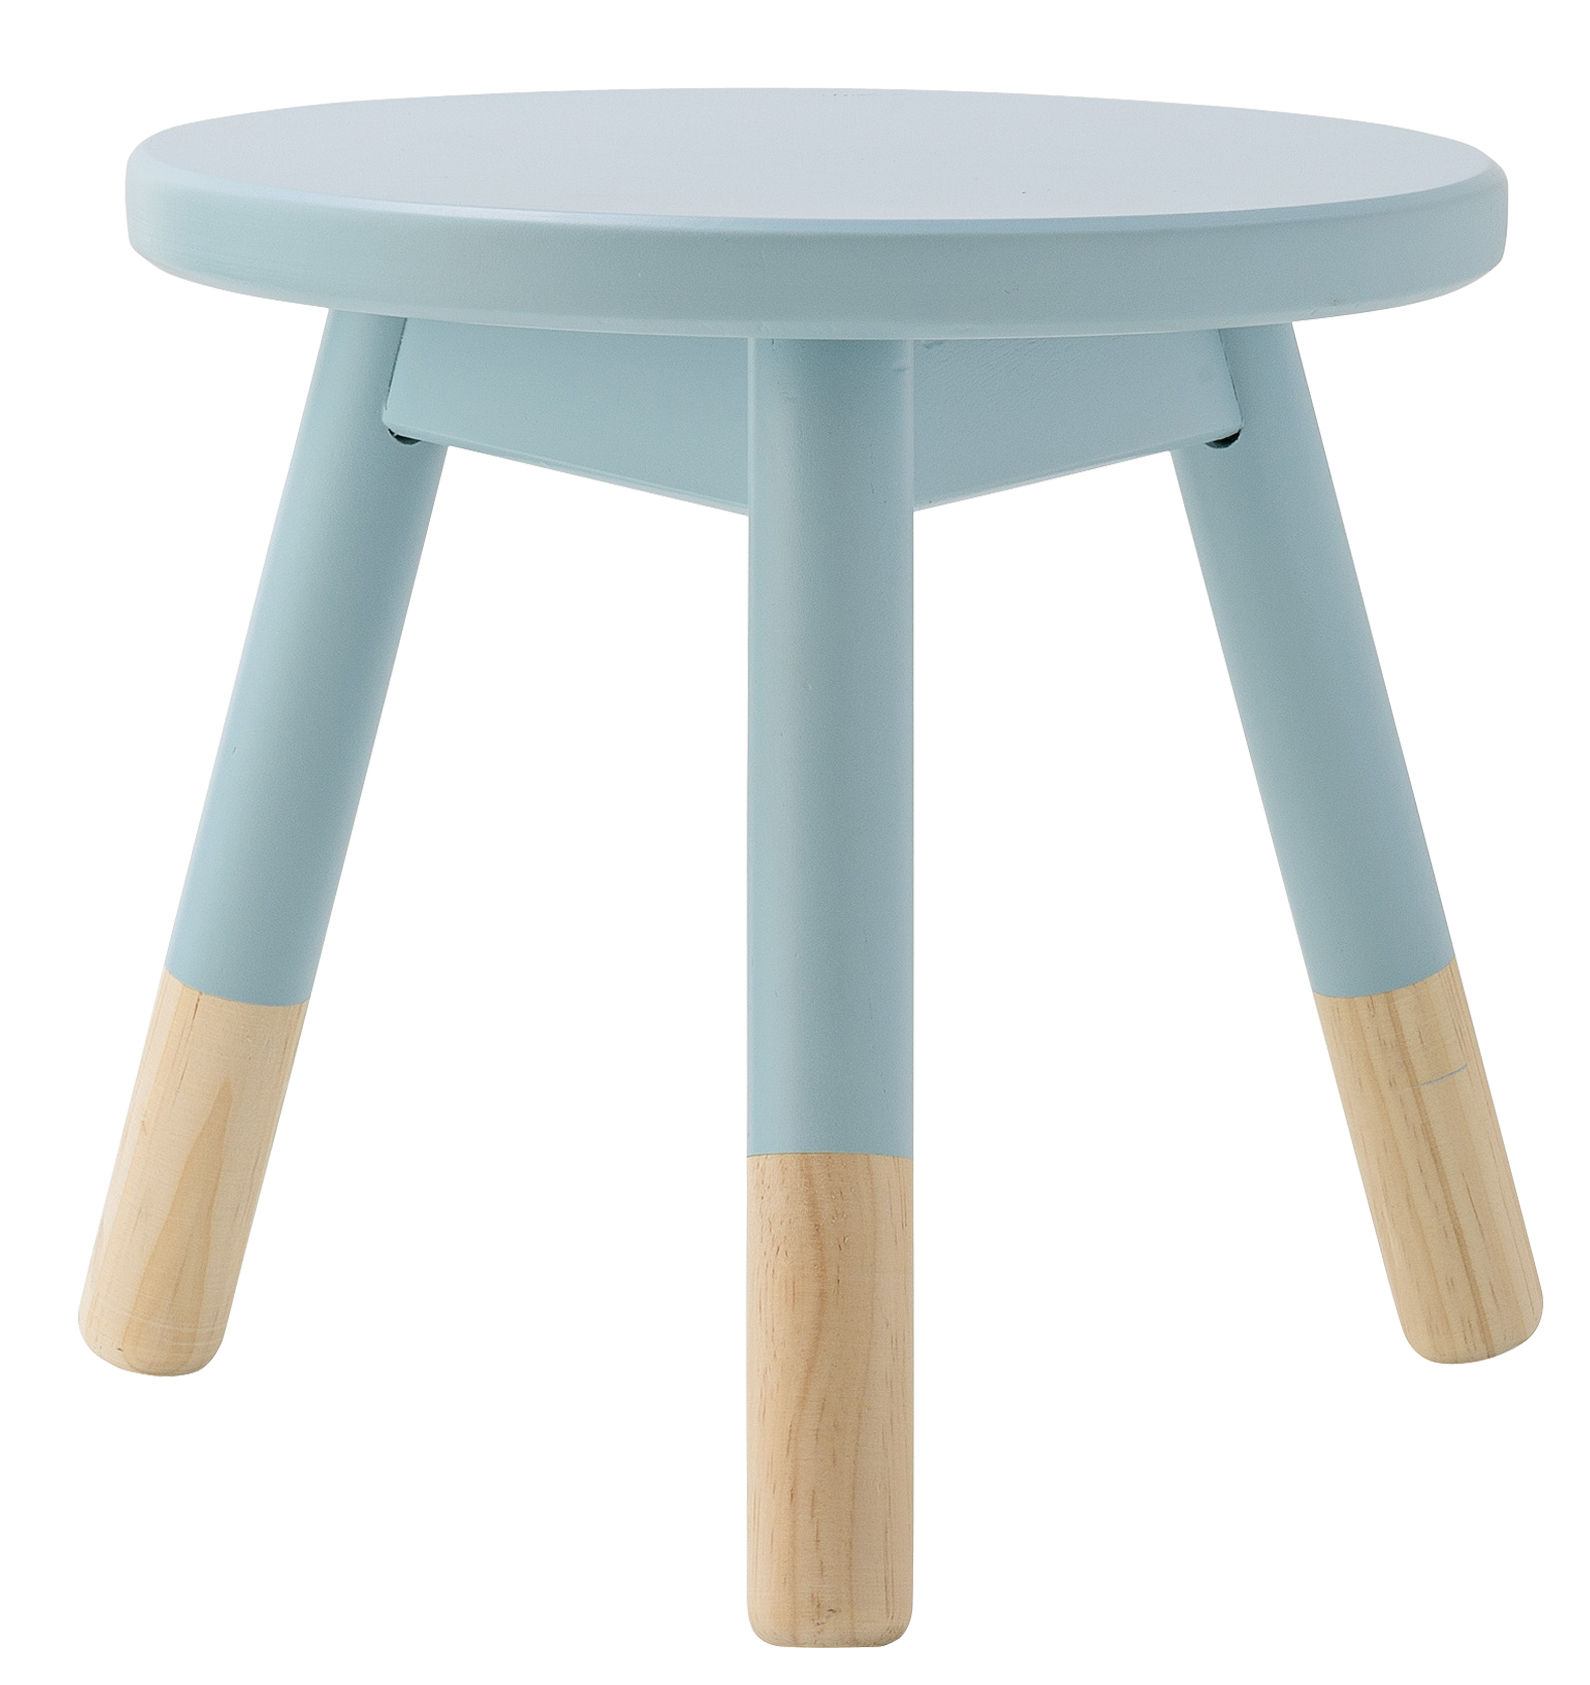 Home > Furniture > Kids furniture > Stool Kids Wood H 30 cm by